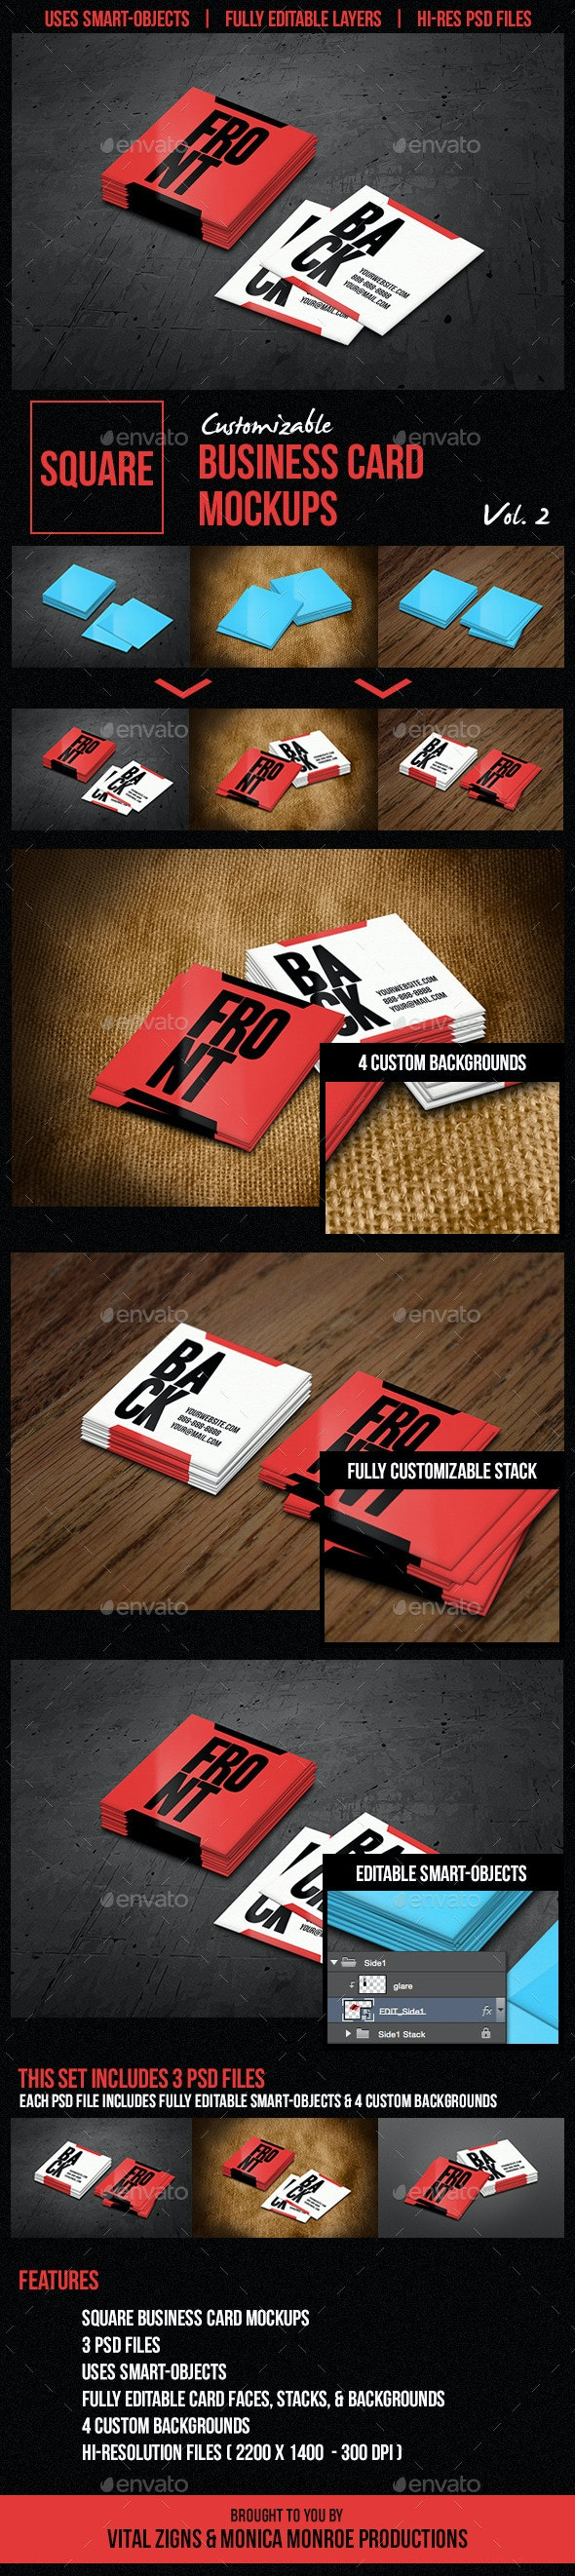 Square Business Card Mockups Vol. 2  - Business Cards Print